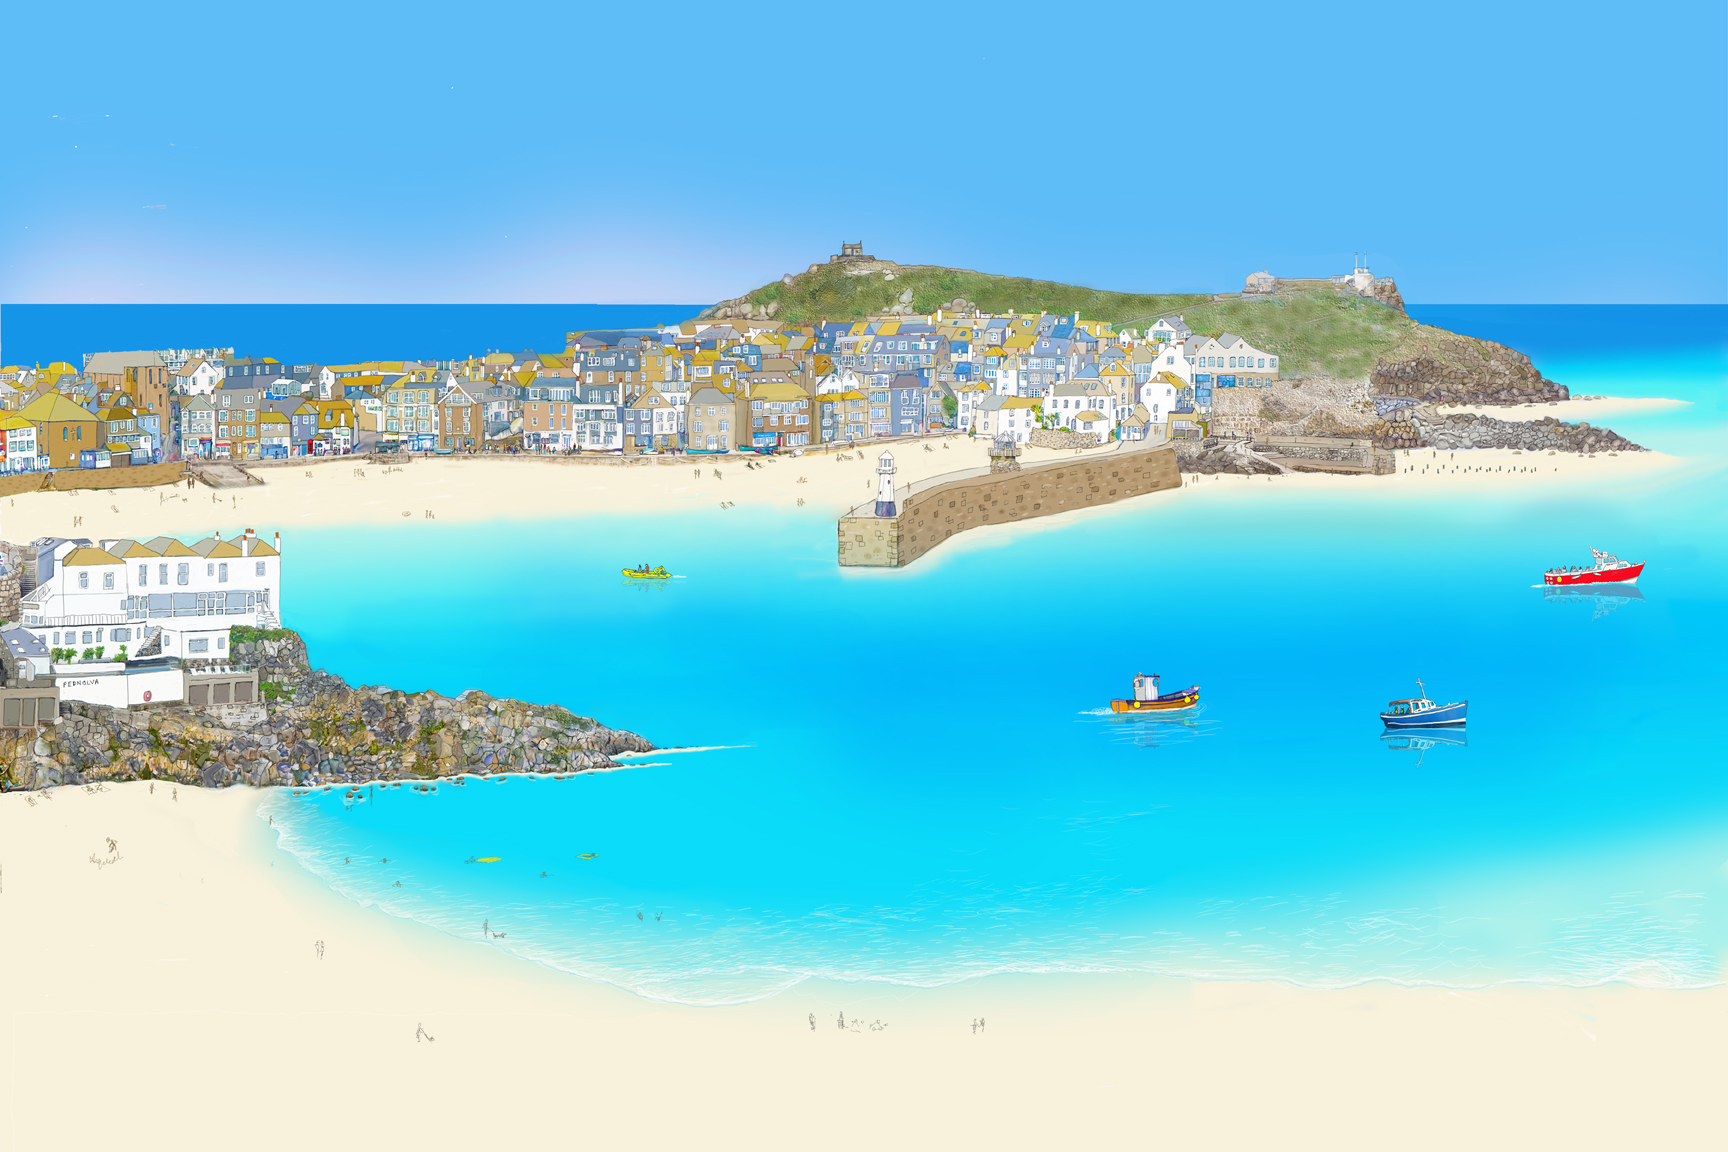 First Glimpse II - St Ives